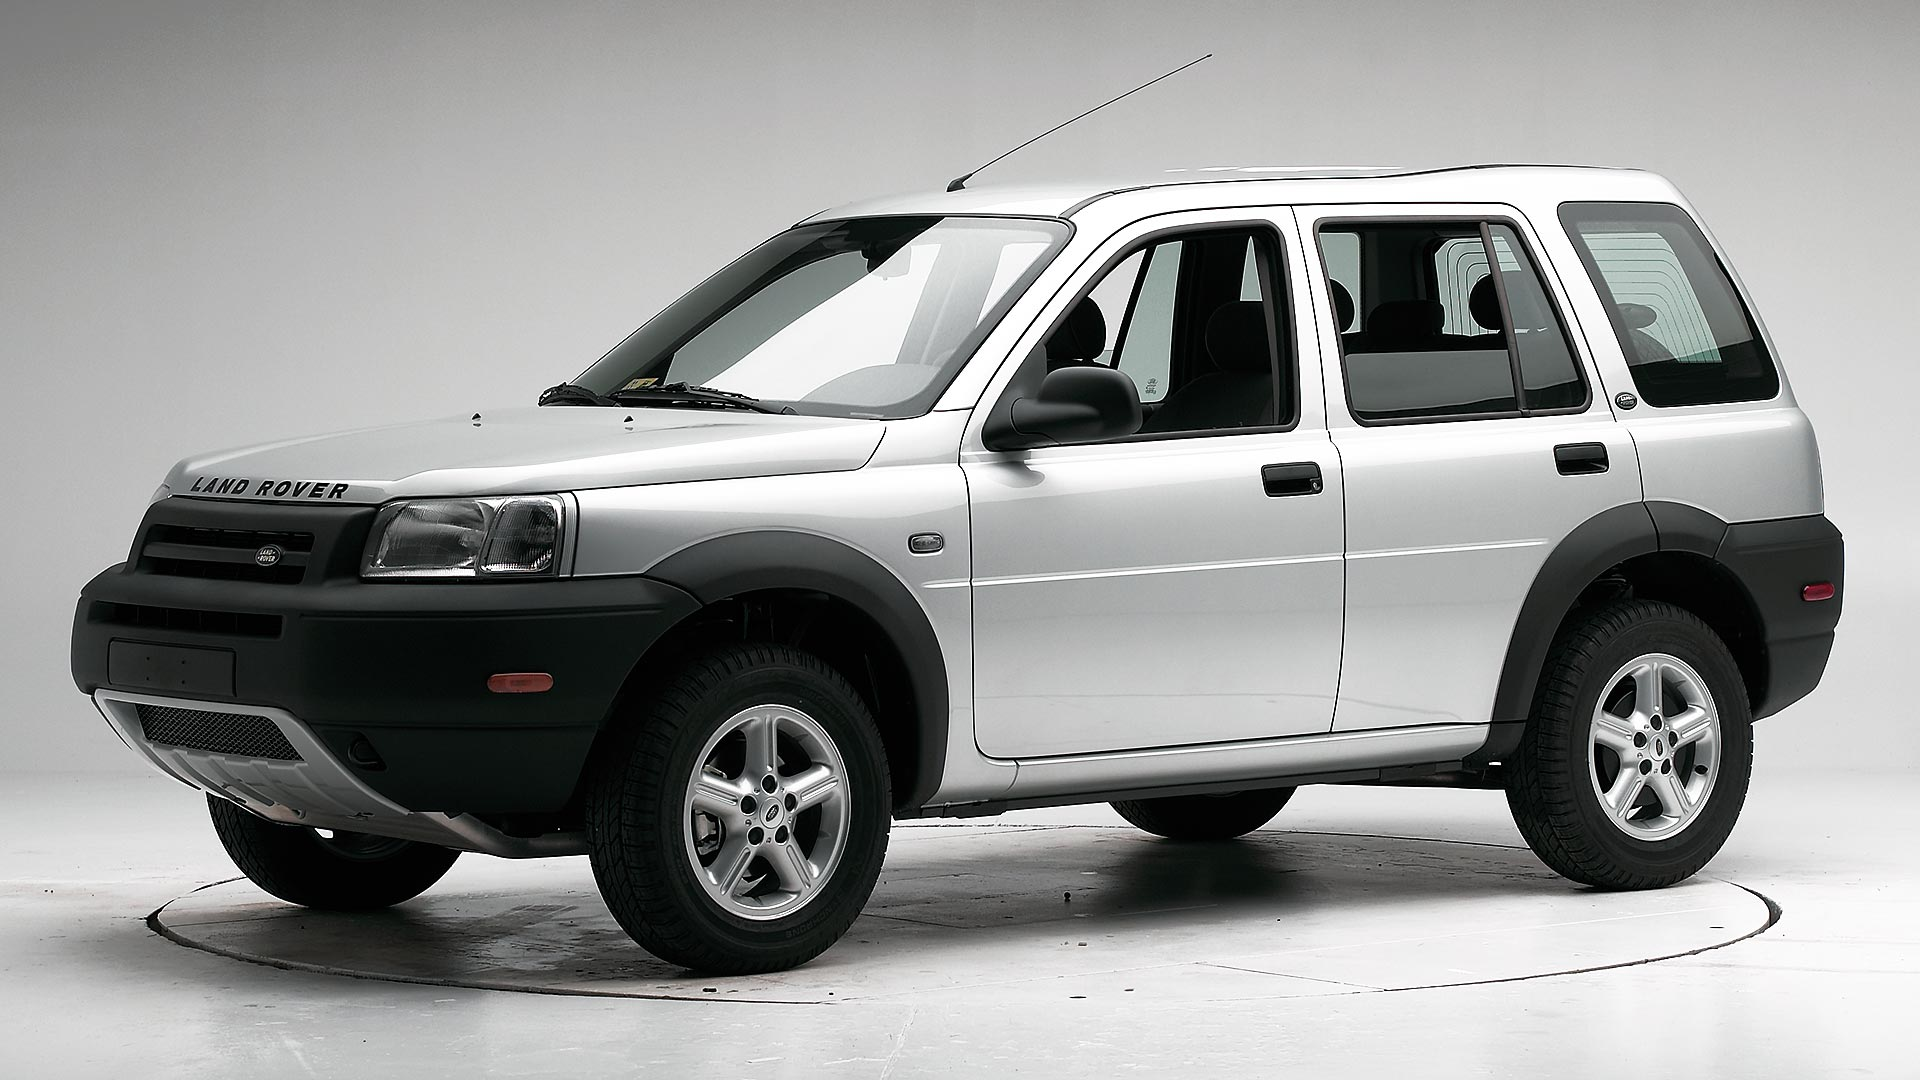 2005 Land Rover Freelander 4-door SUV